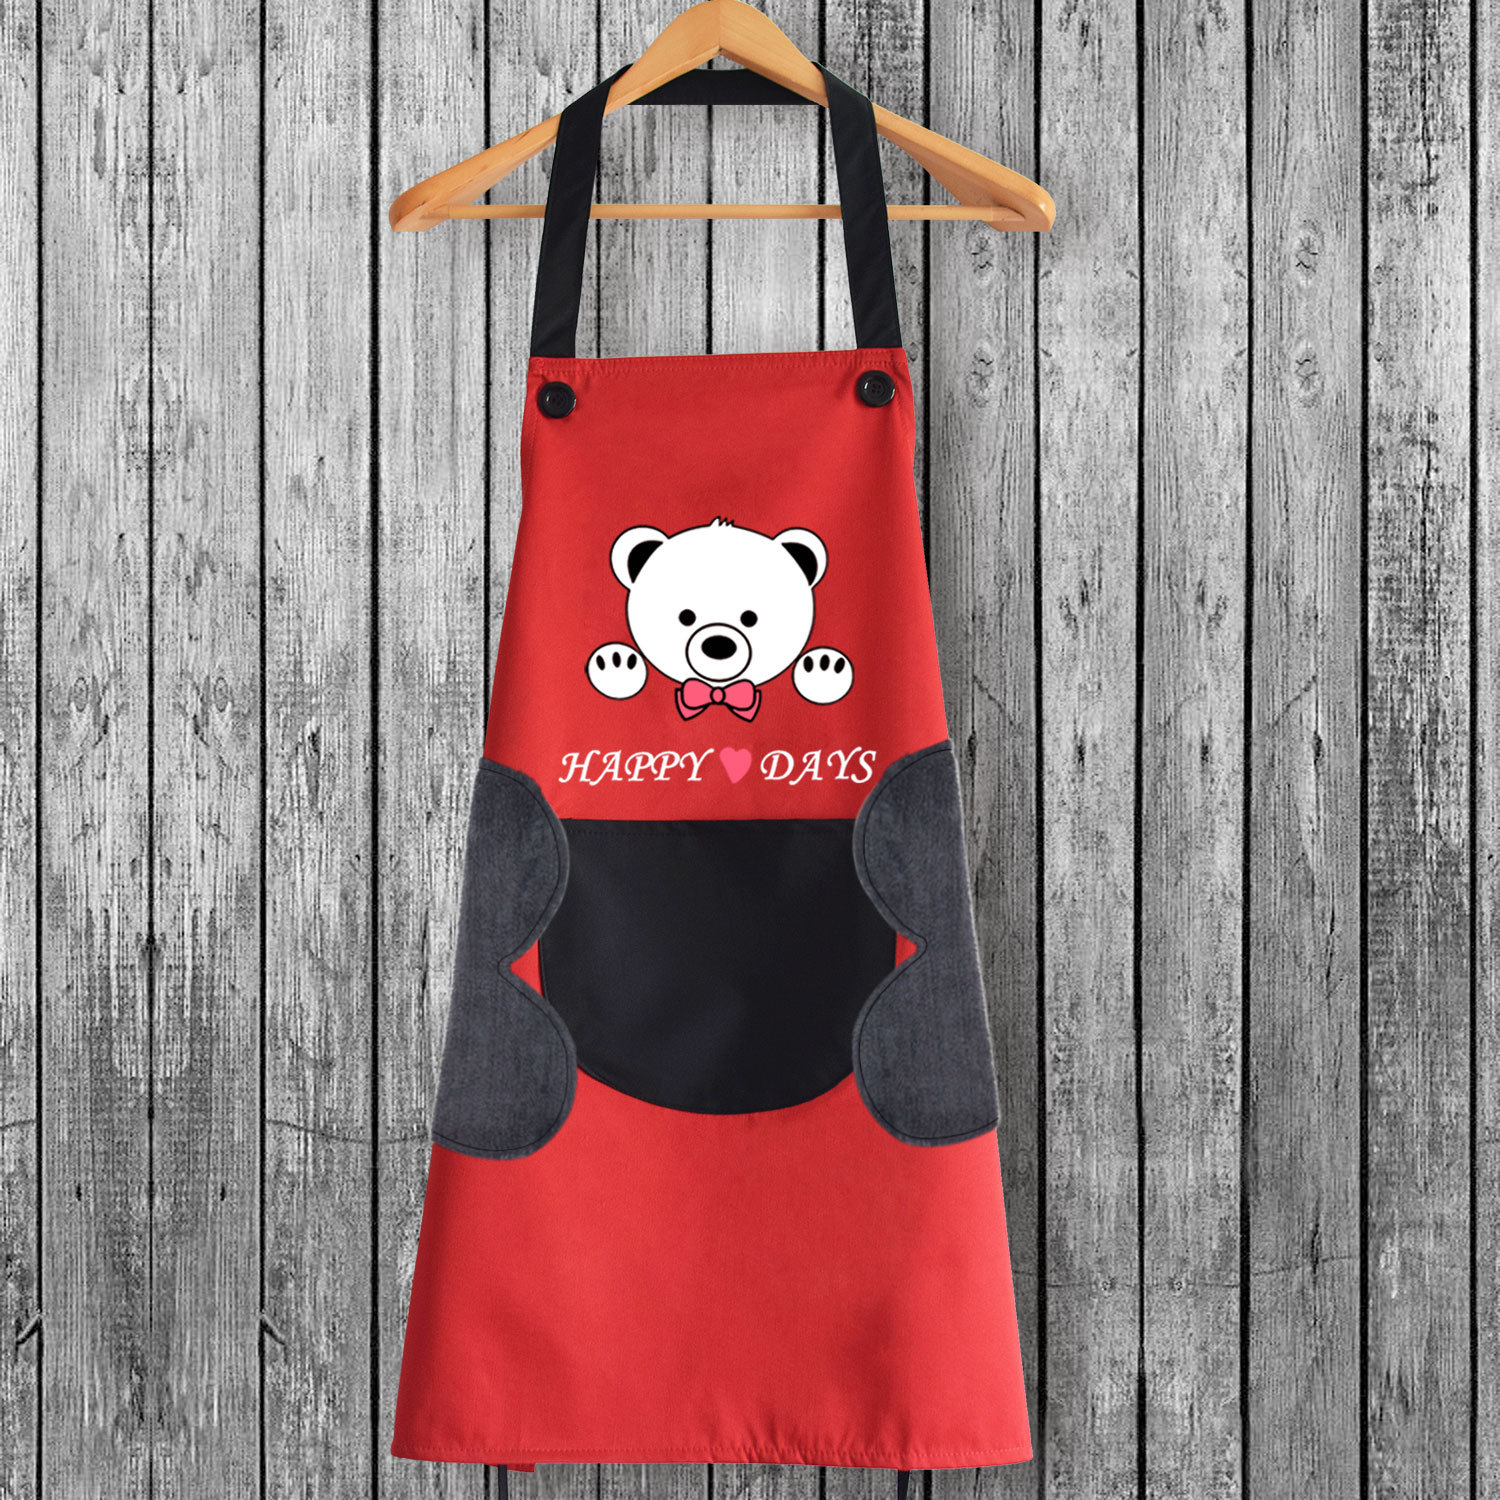 Kitchen Cooking Wipable Hand Apron Towel Fashion Waterproof Oil Resistant Cute Cartoon Men And Women Work Clothes Apron|Oversleeves| |  - title=